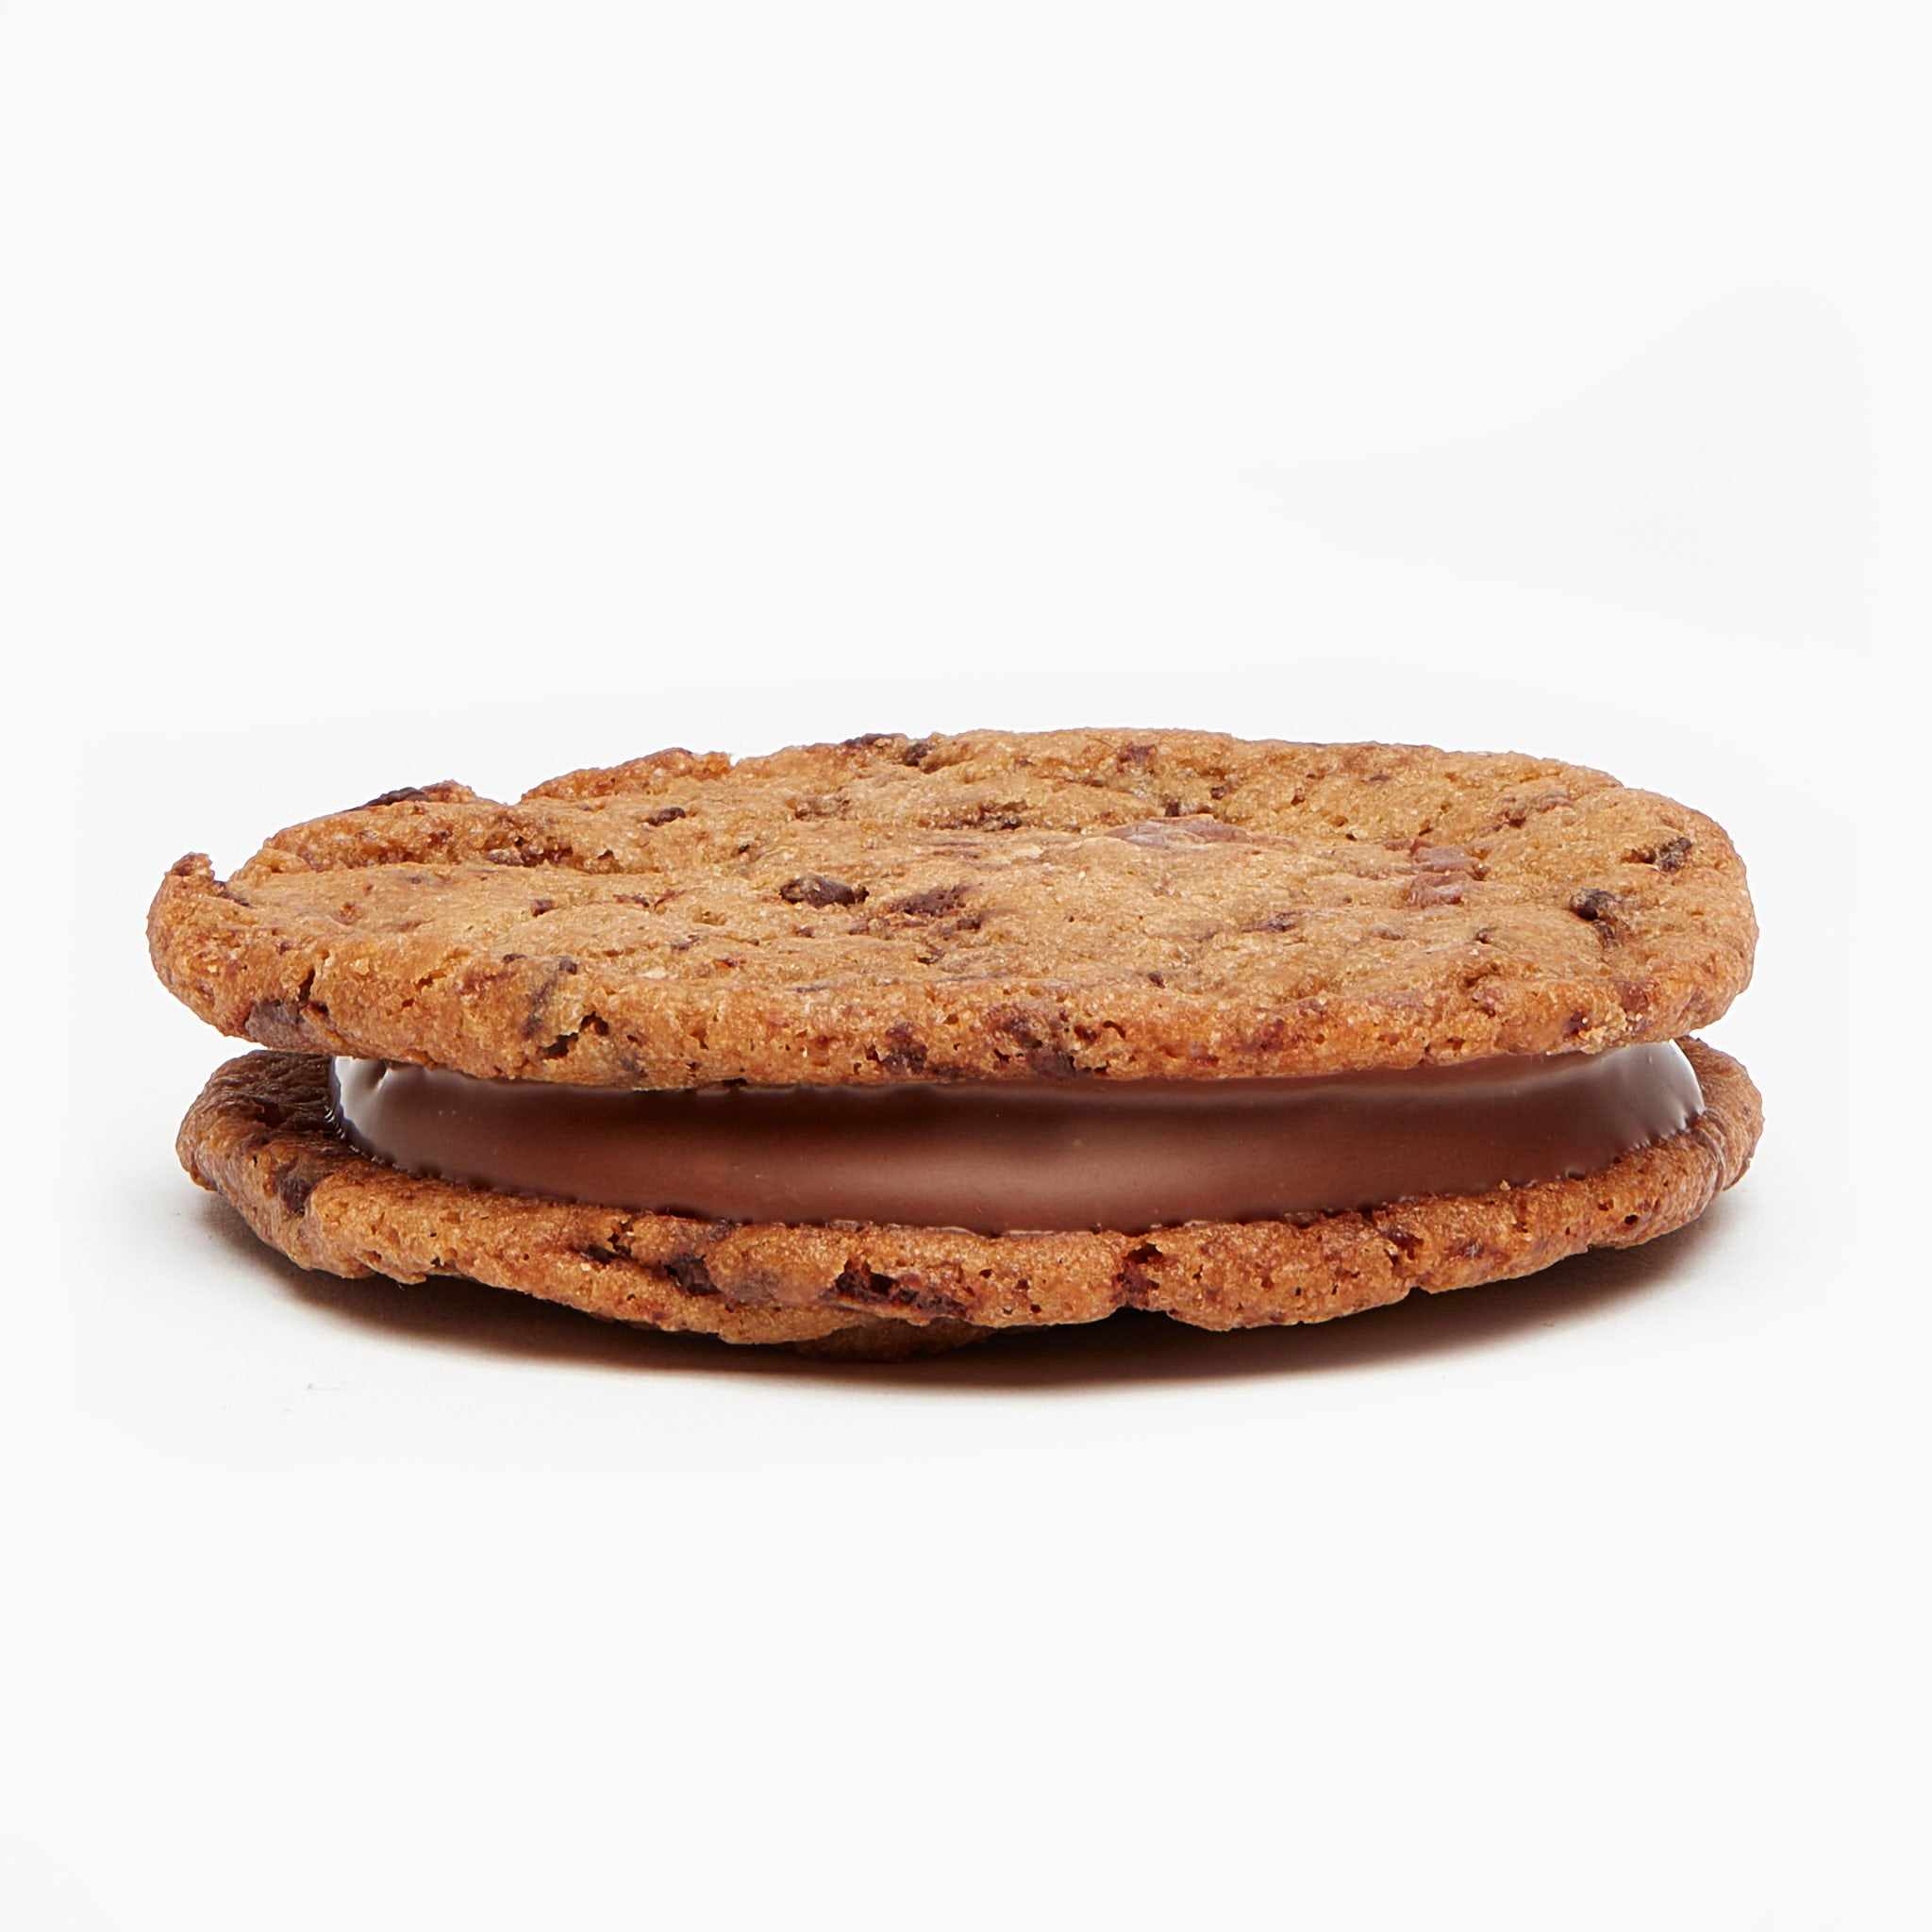 Sea salted caramel chocolate chip sandwich cookie